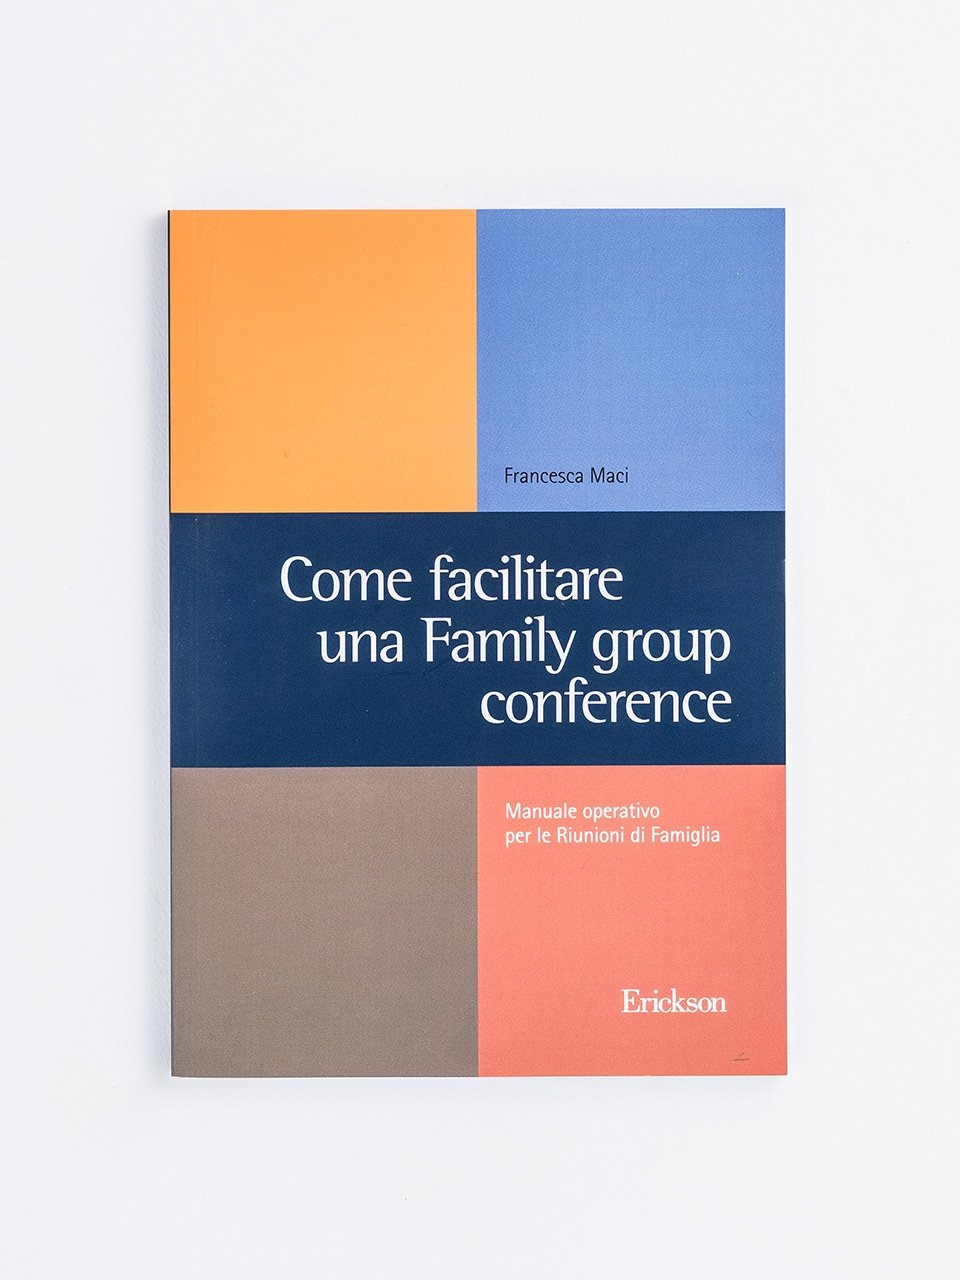 Come facilitare una Family group conference - ScienzeImparo 3 - Libri - Erickson